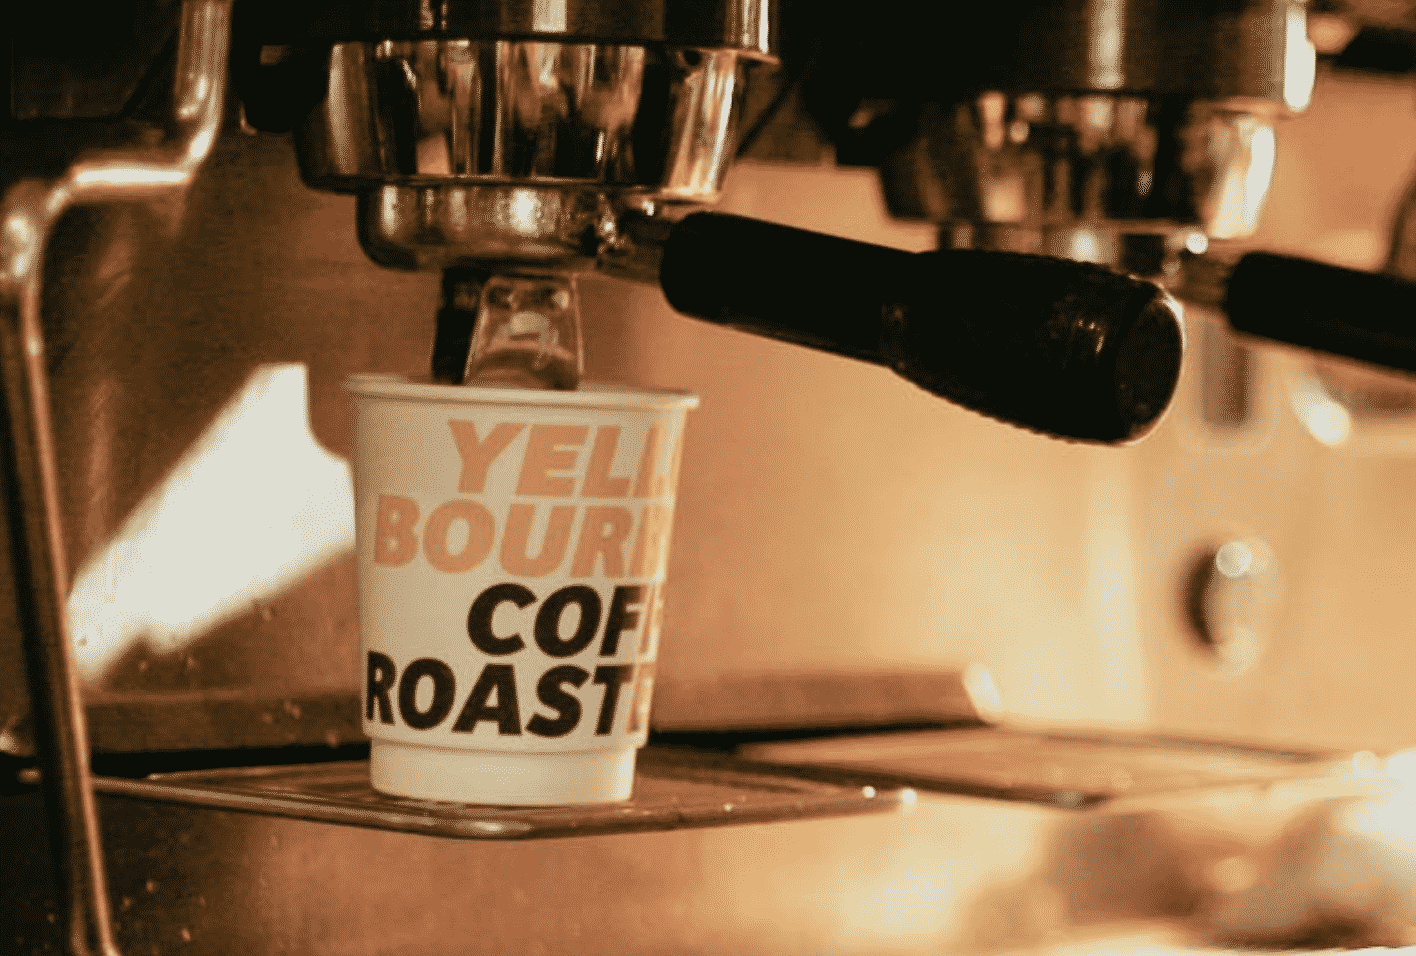 Yellow Bourbon Coffee Roasters In England